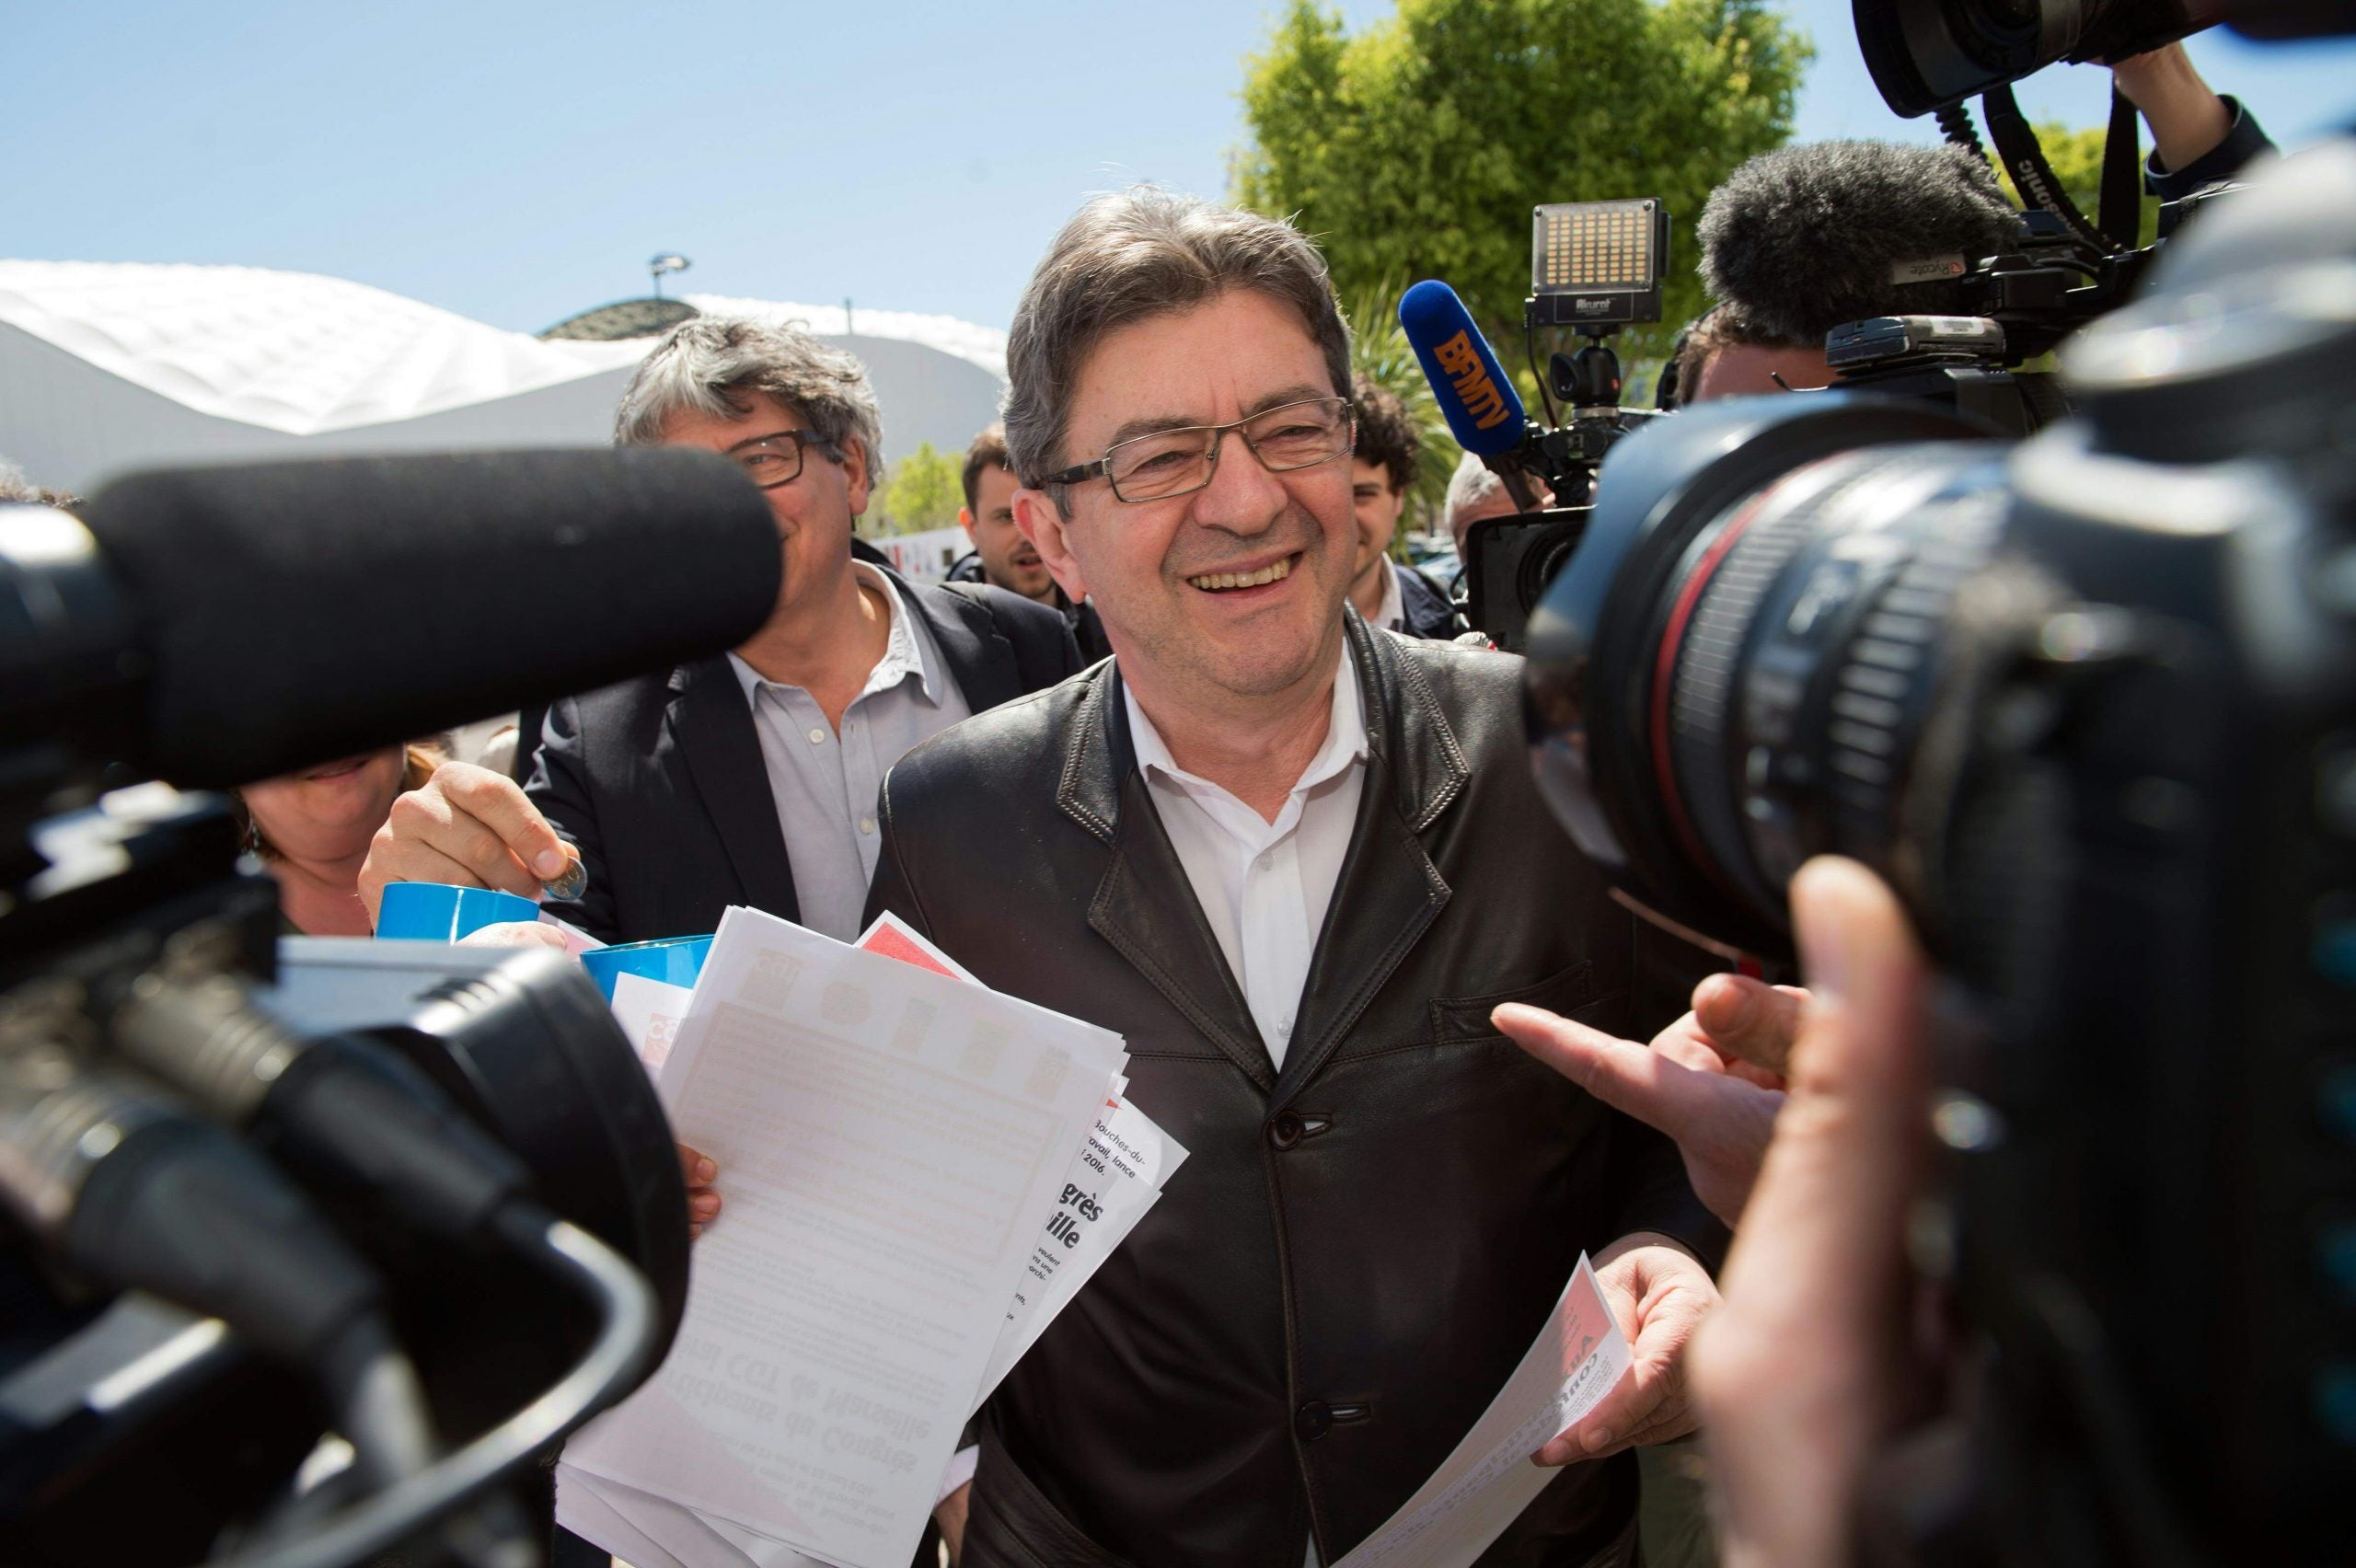 Meet Jean-Luc Mélenchon, the far left candidate gaining momentum in the French election